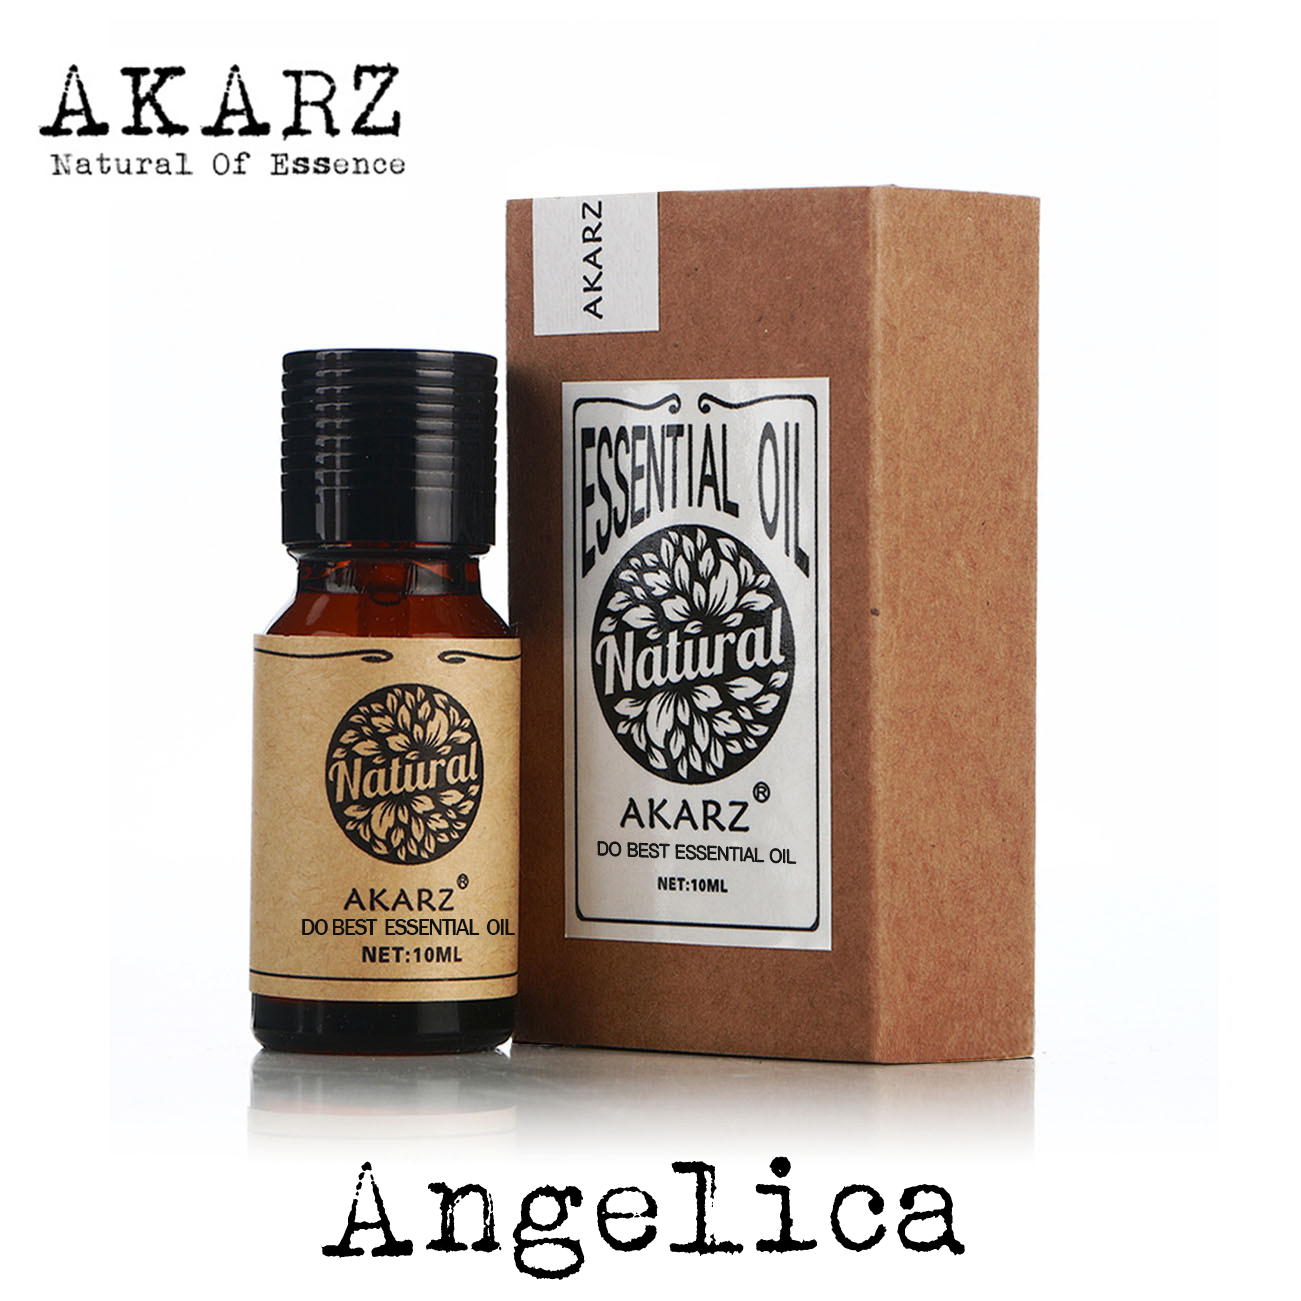 AKARZ Famous brand natural Angelica oil Dilation of blood vessels Promoting hepatocyte regeneration Angelica essential oil guzzini салфетница tiffany 15 2х7 6х11 см серая